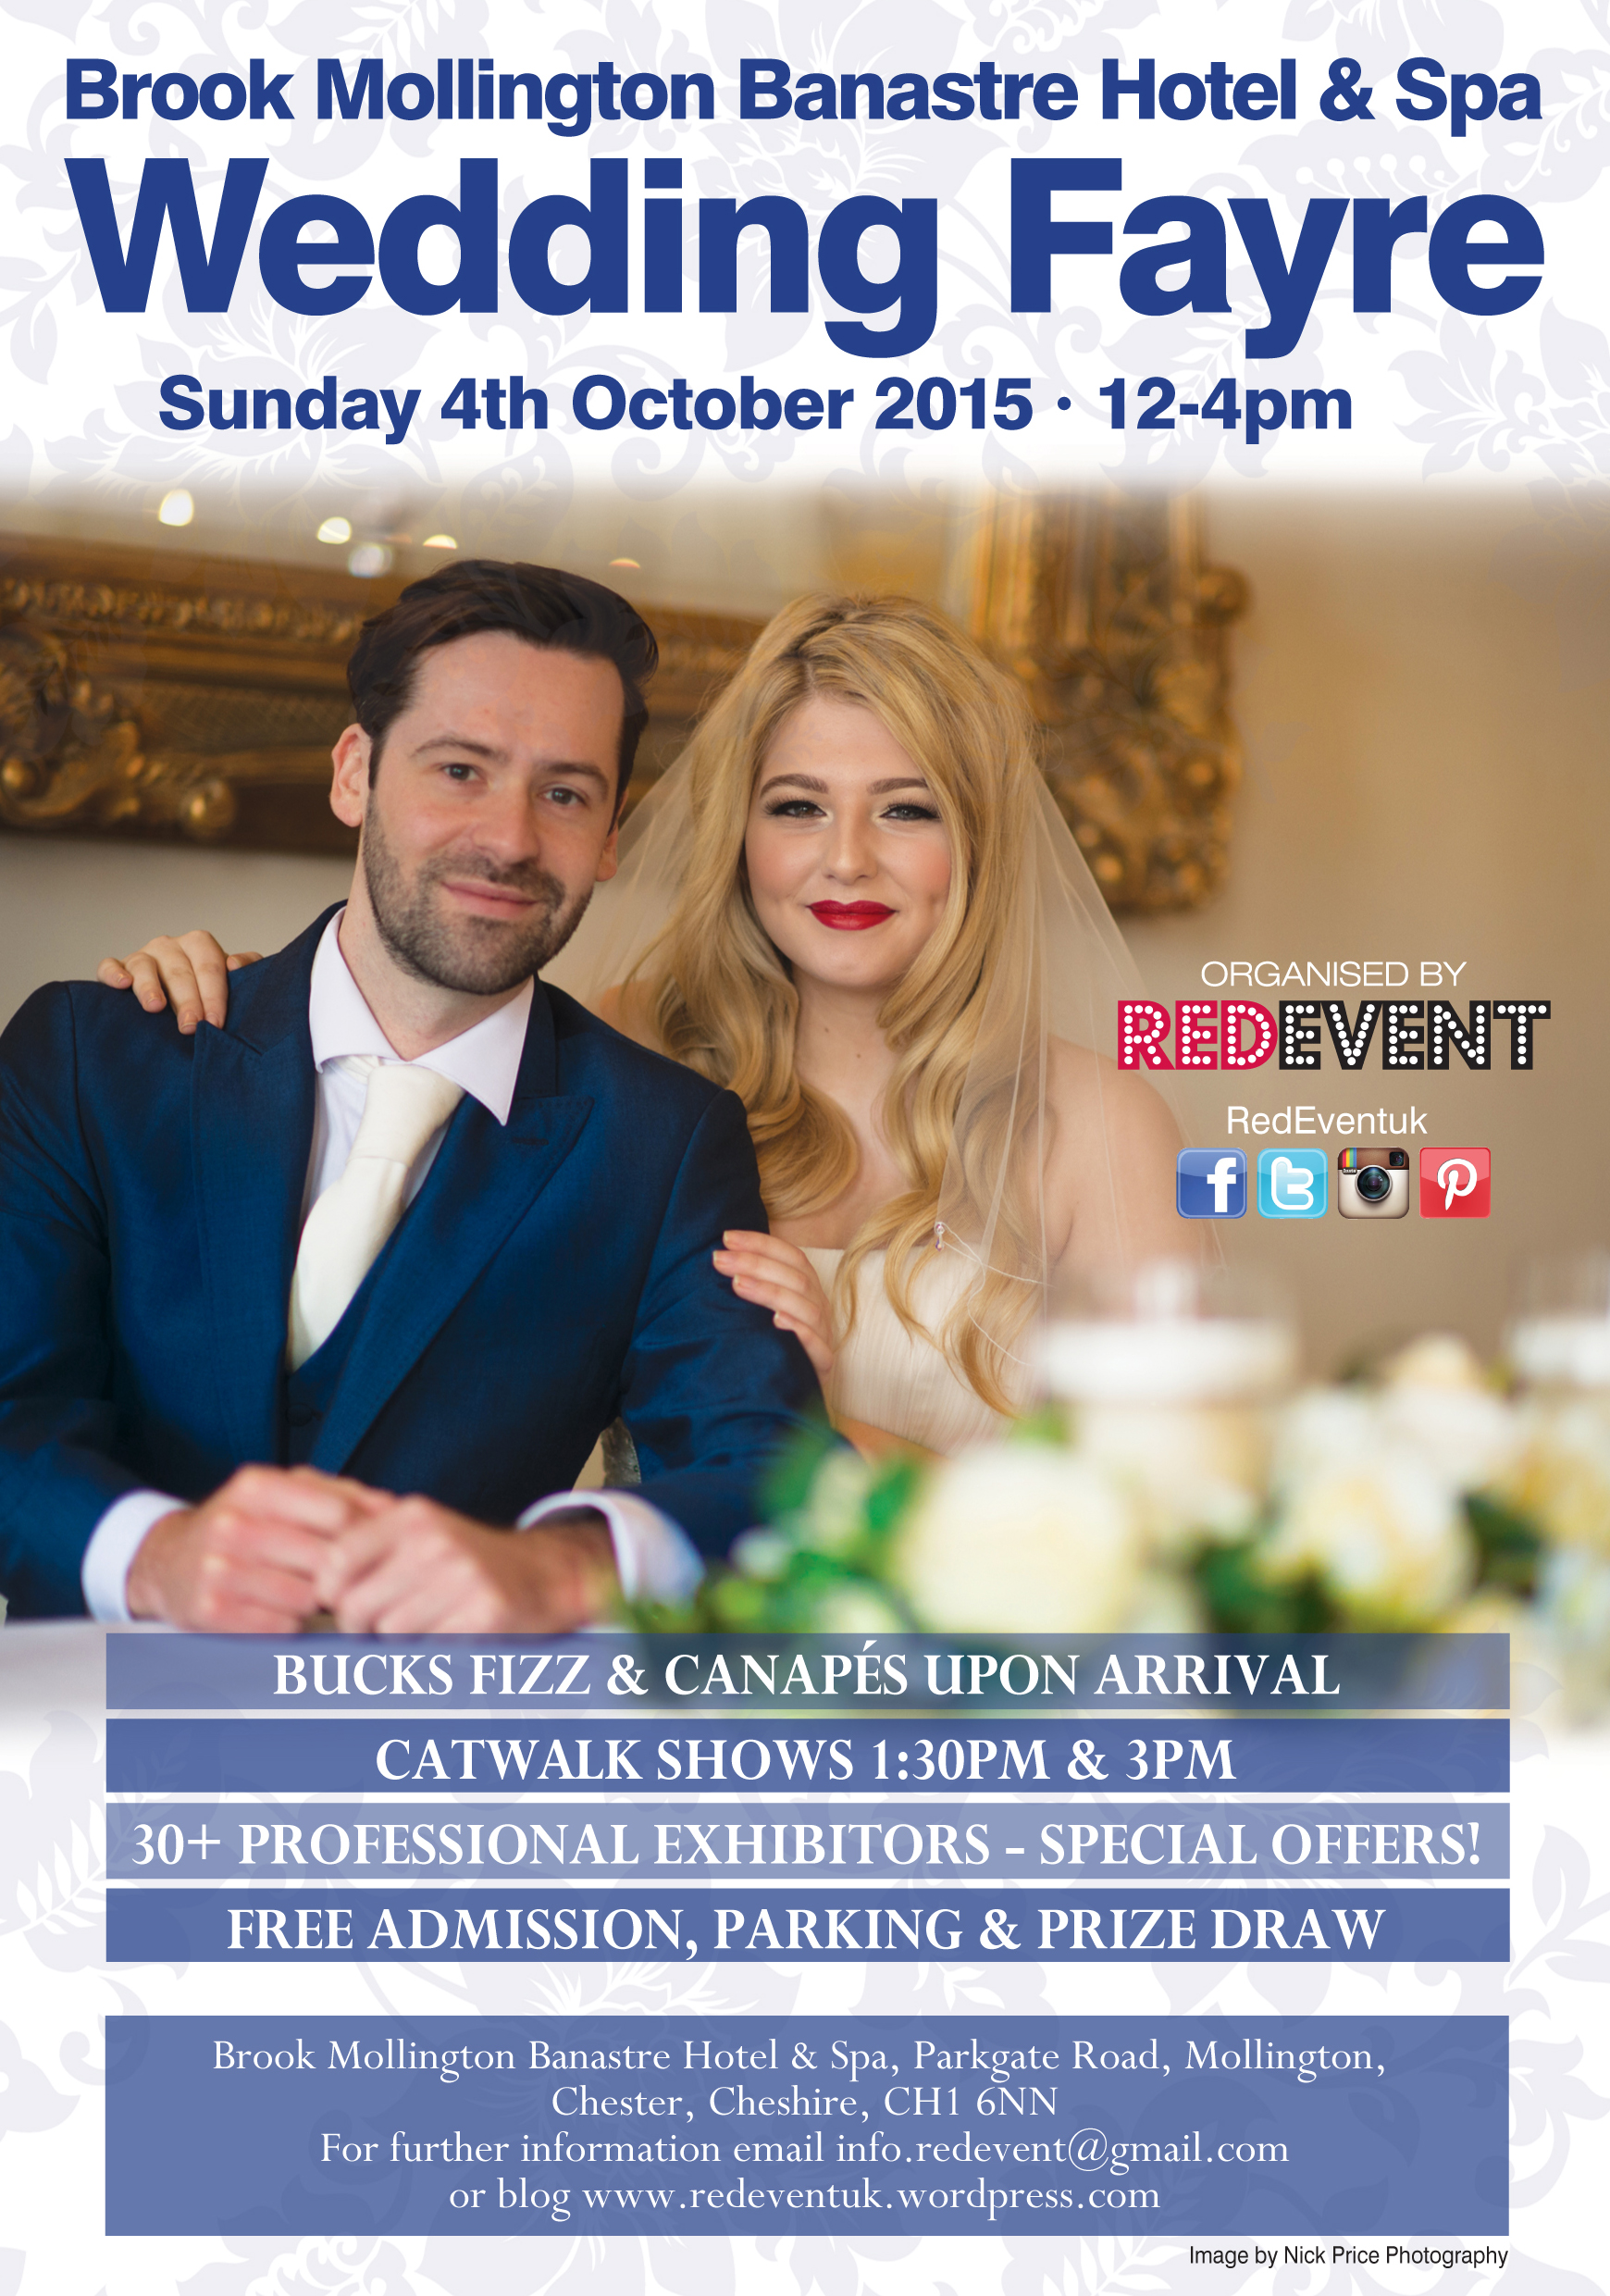 The Red Event Brook Mollington Banastre Hotel & Spa Wedding Fayre Merseyside Chester October 2015